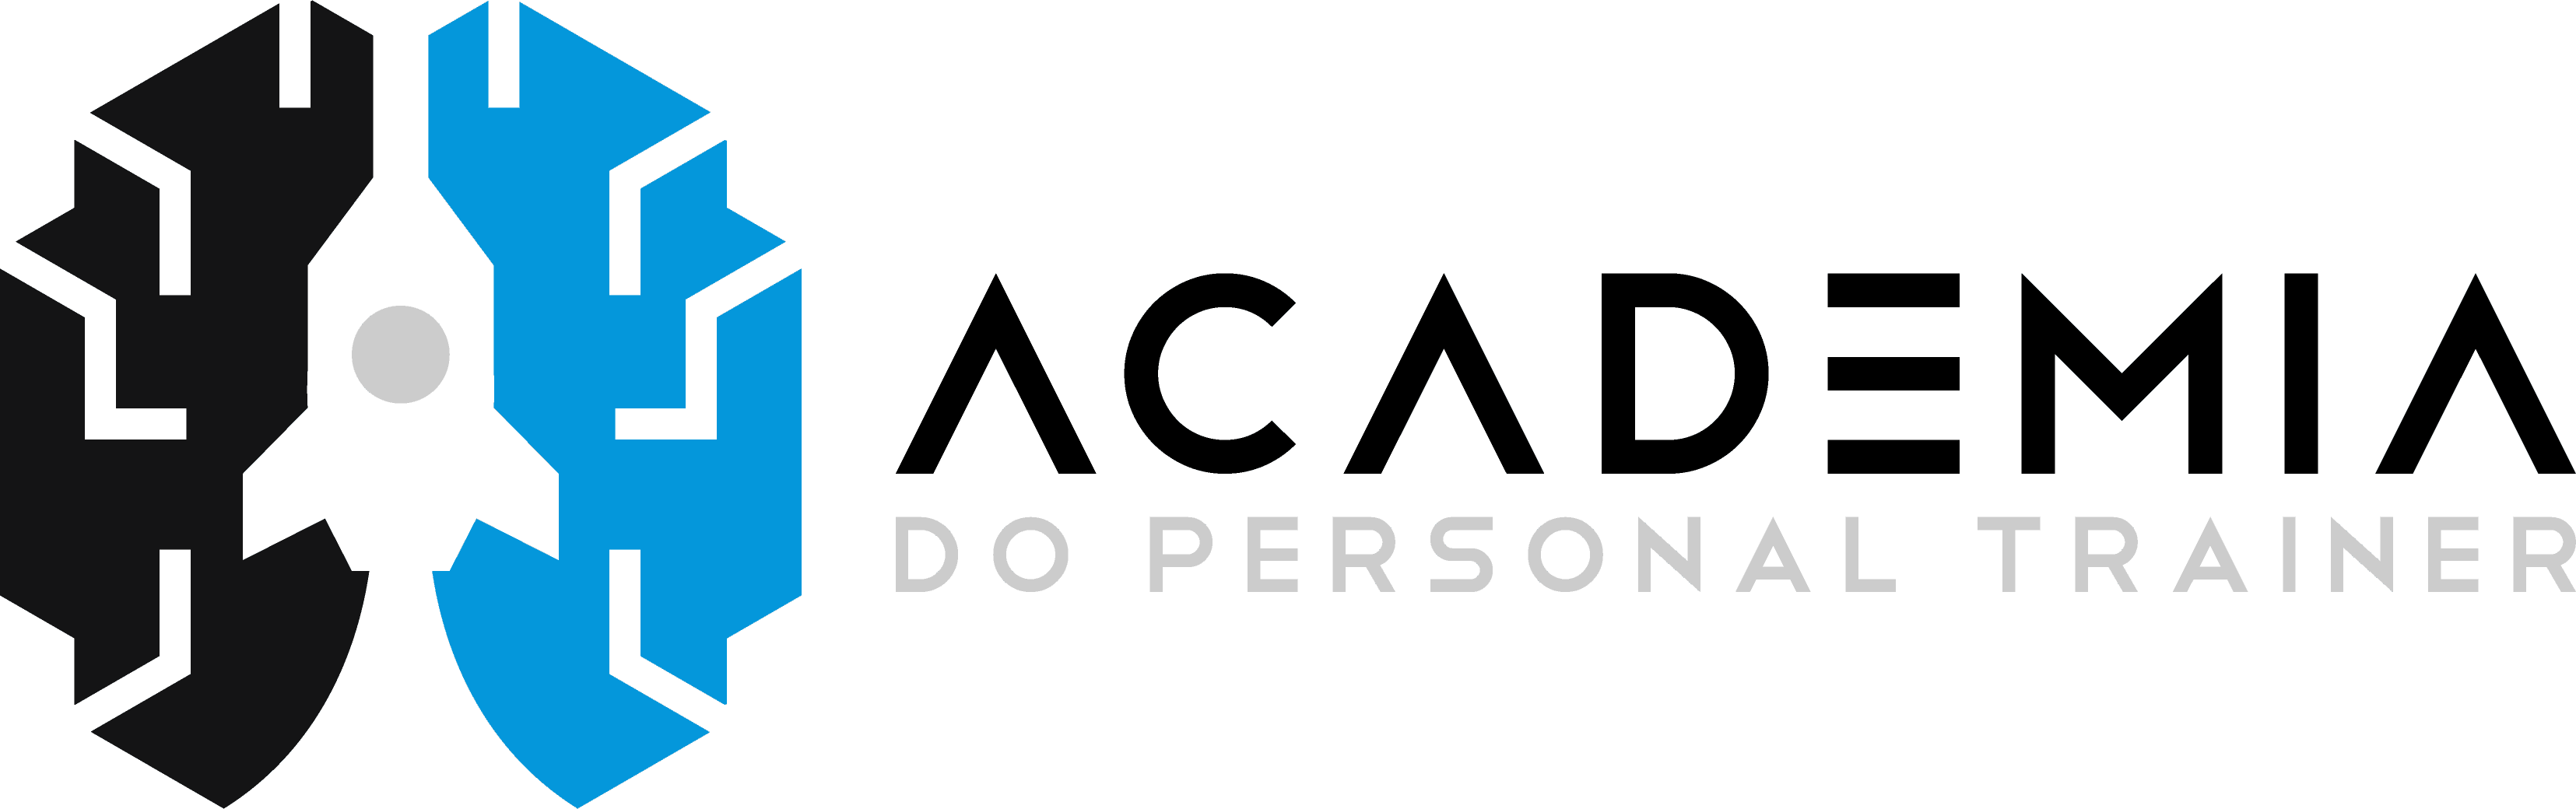 Academia do Personal trainer